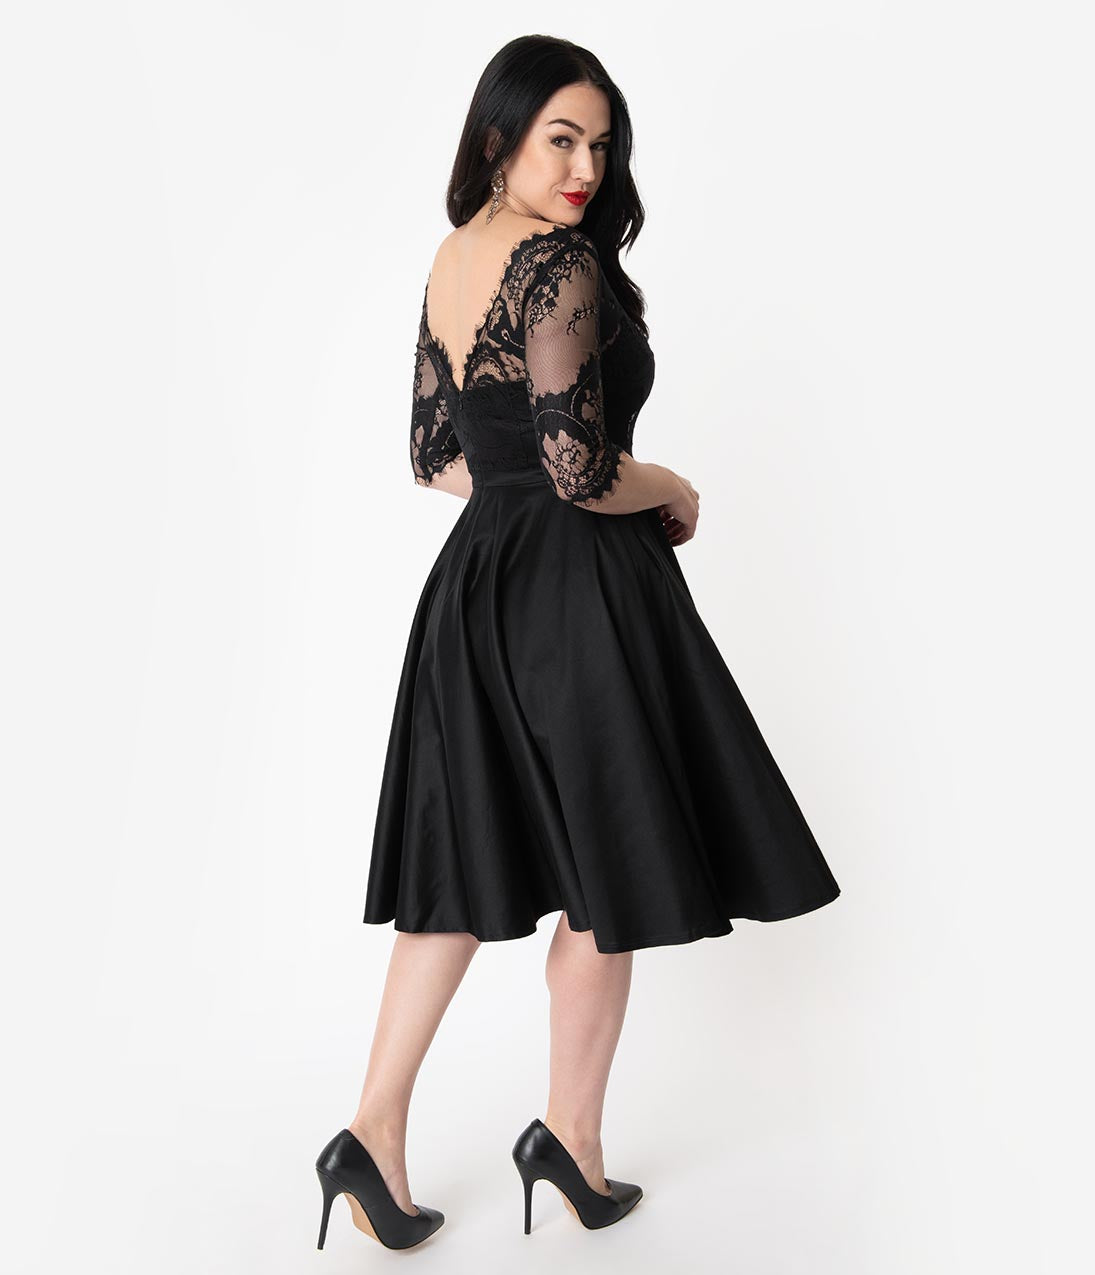 Cocktail Dresses - Vintage & Retro Party & Holiday Dresses